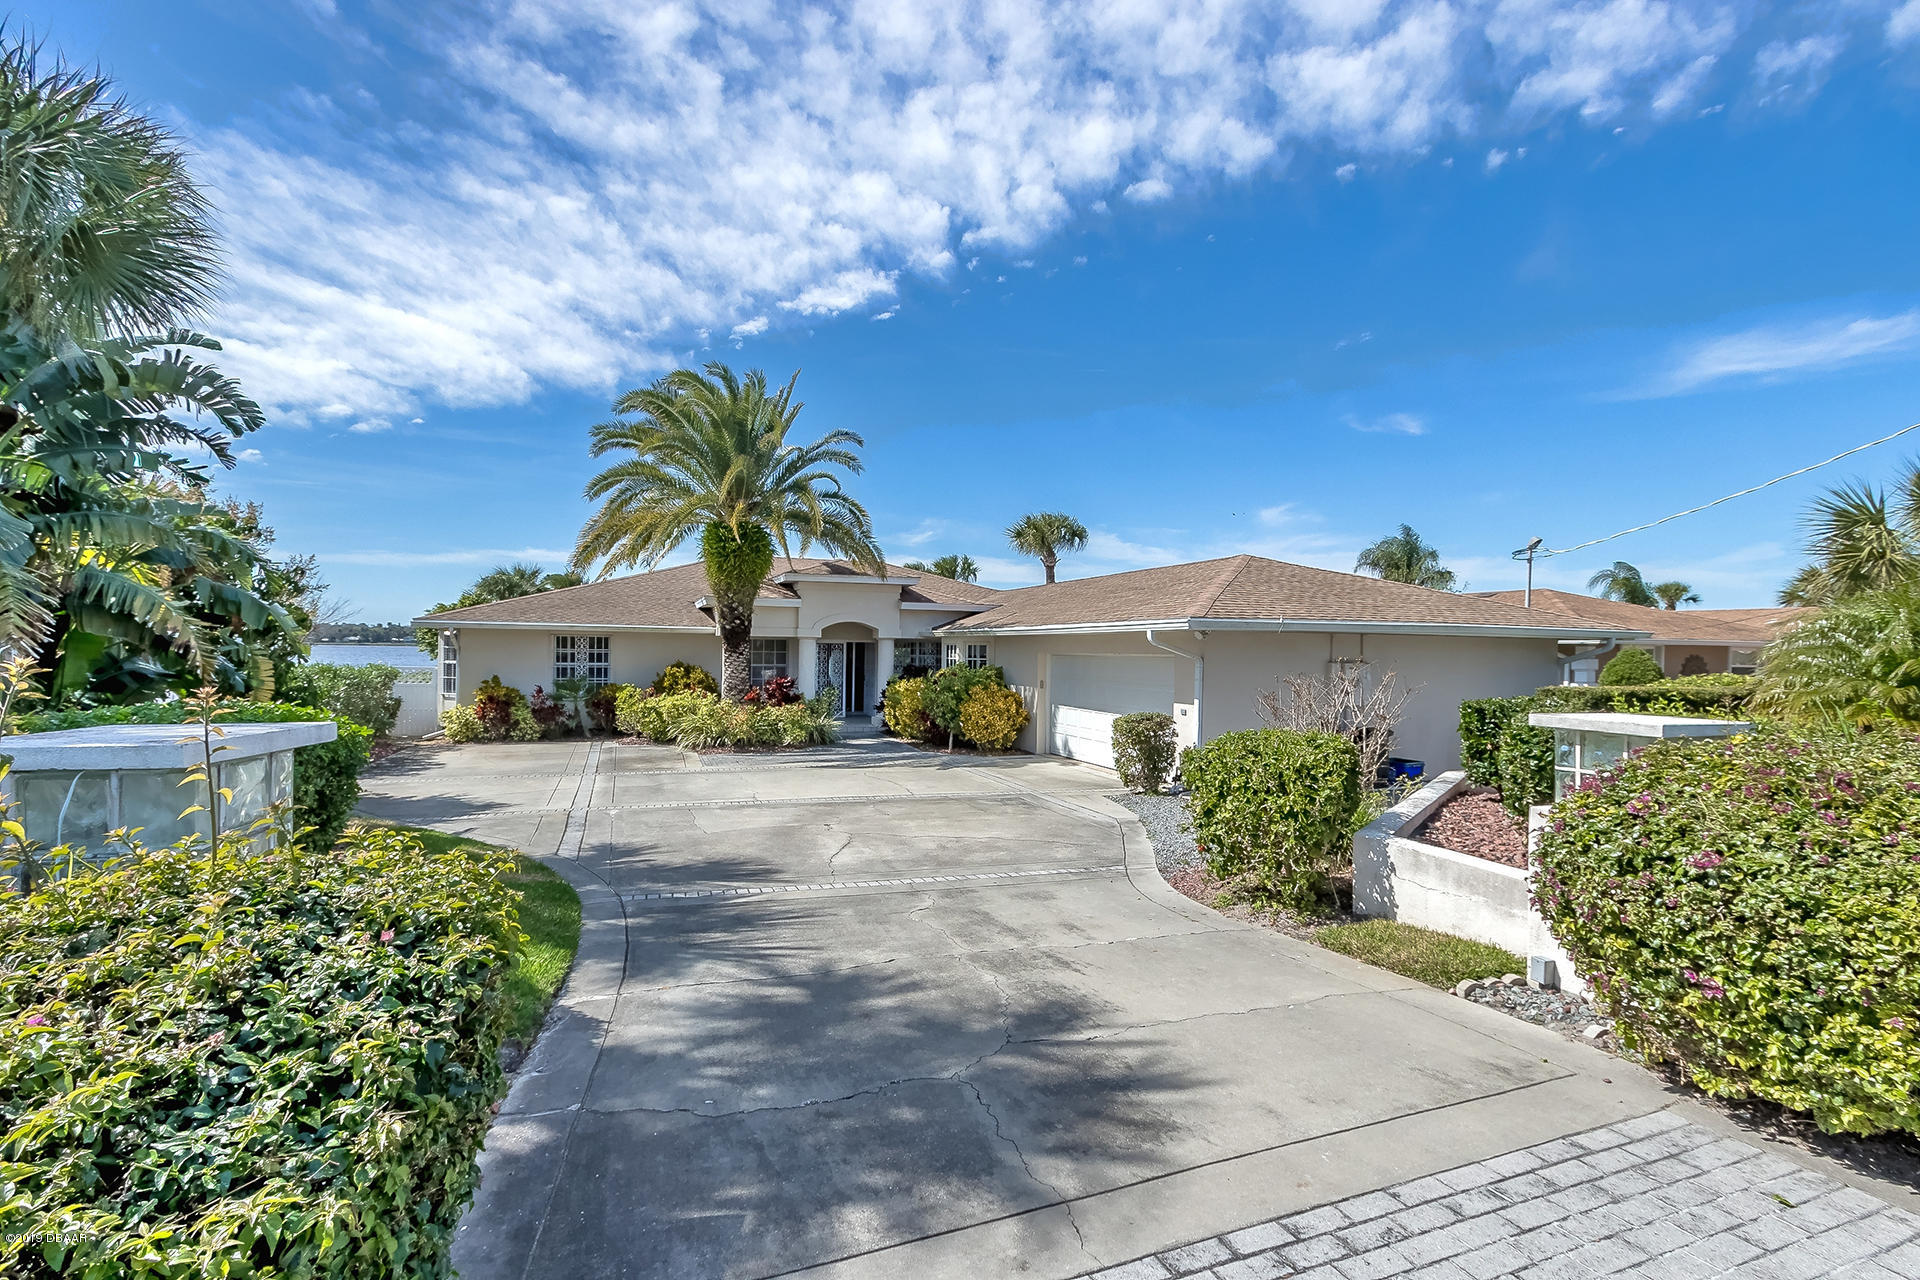 444 Riverside Drive 32176 - One of Ormond Beach Homes for Sale